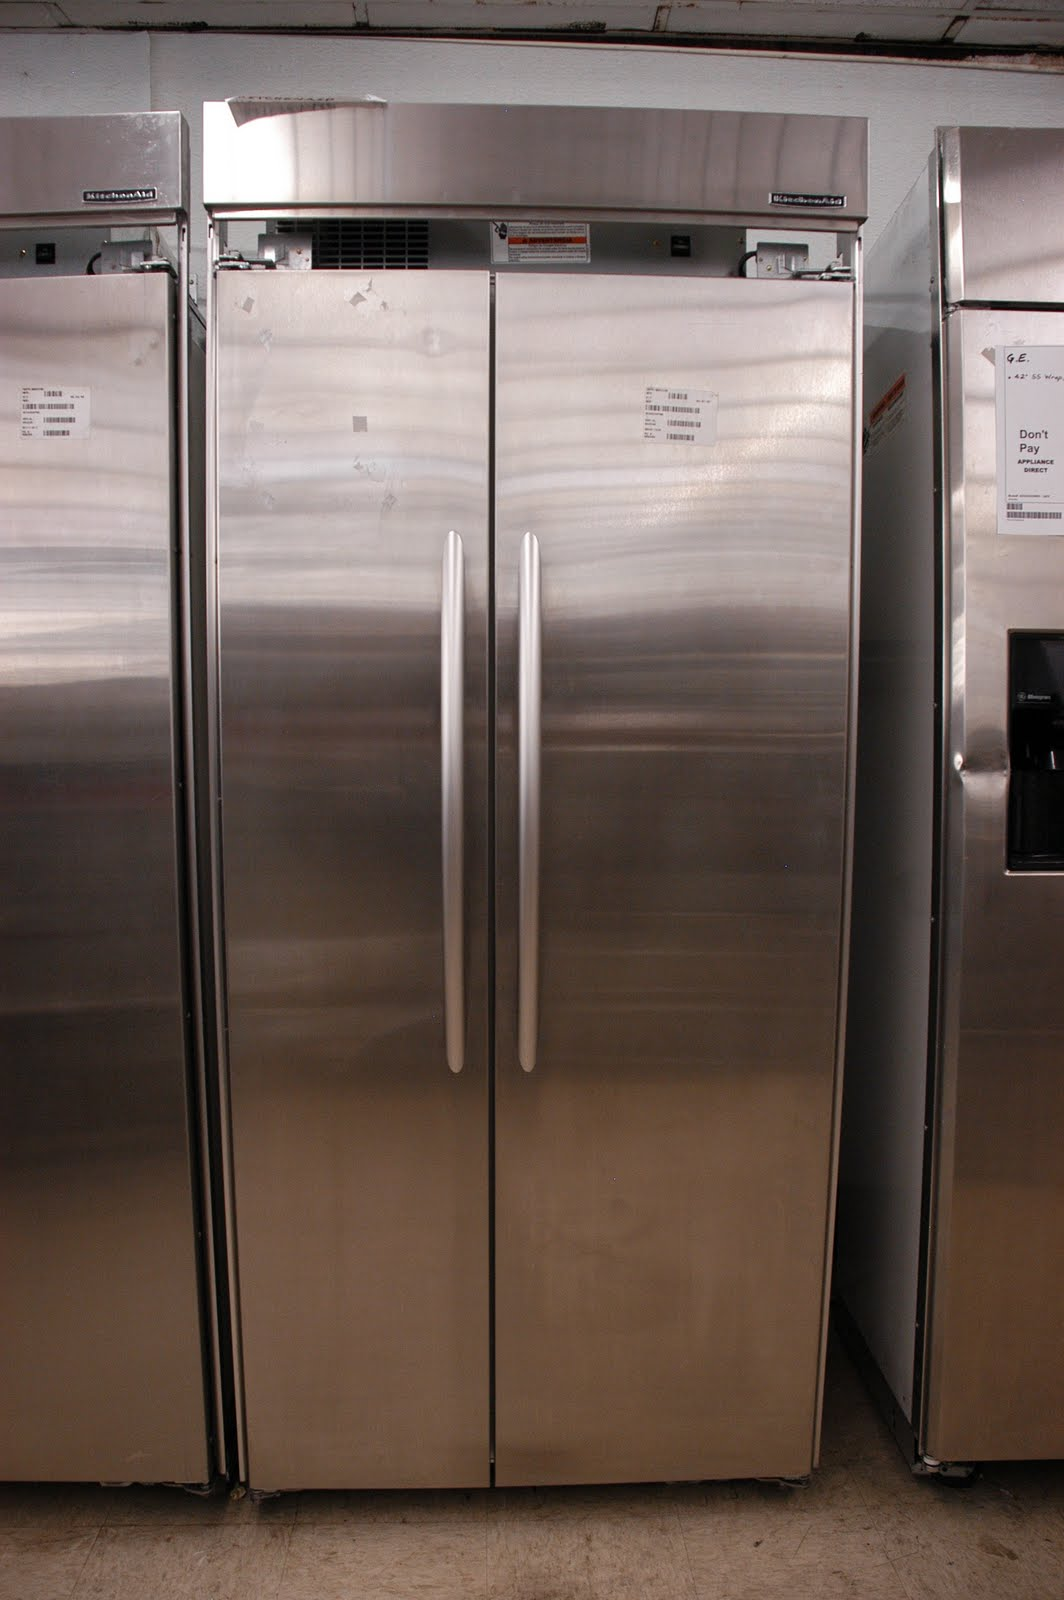 Kitchenaid Refrigerator Side By Side appliance direct video blog: kitchenaid stainless steel side